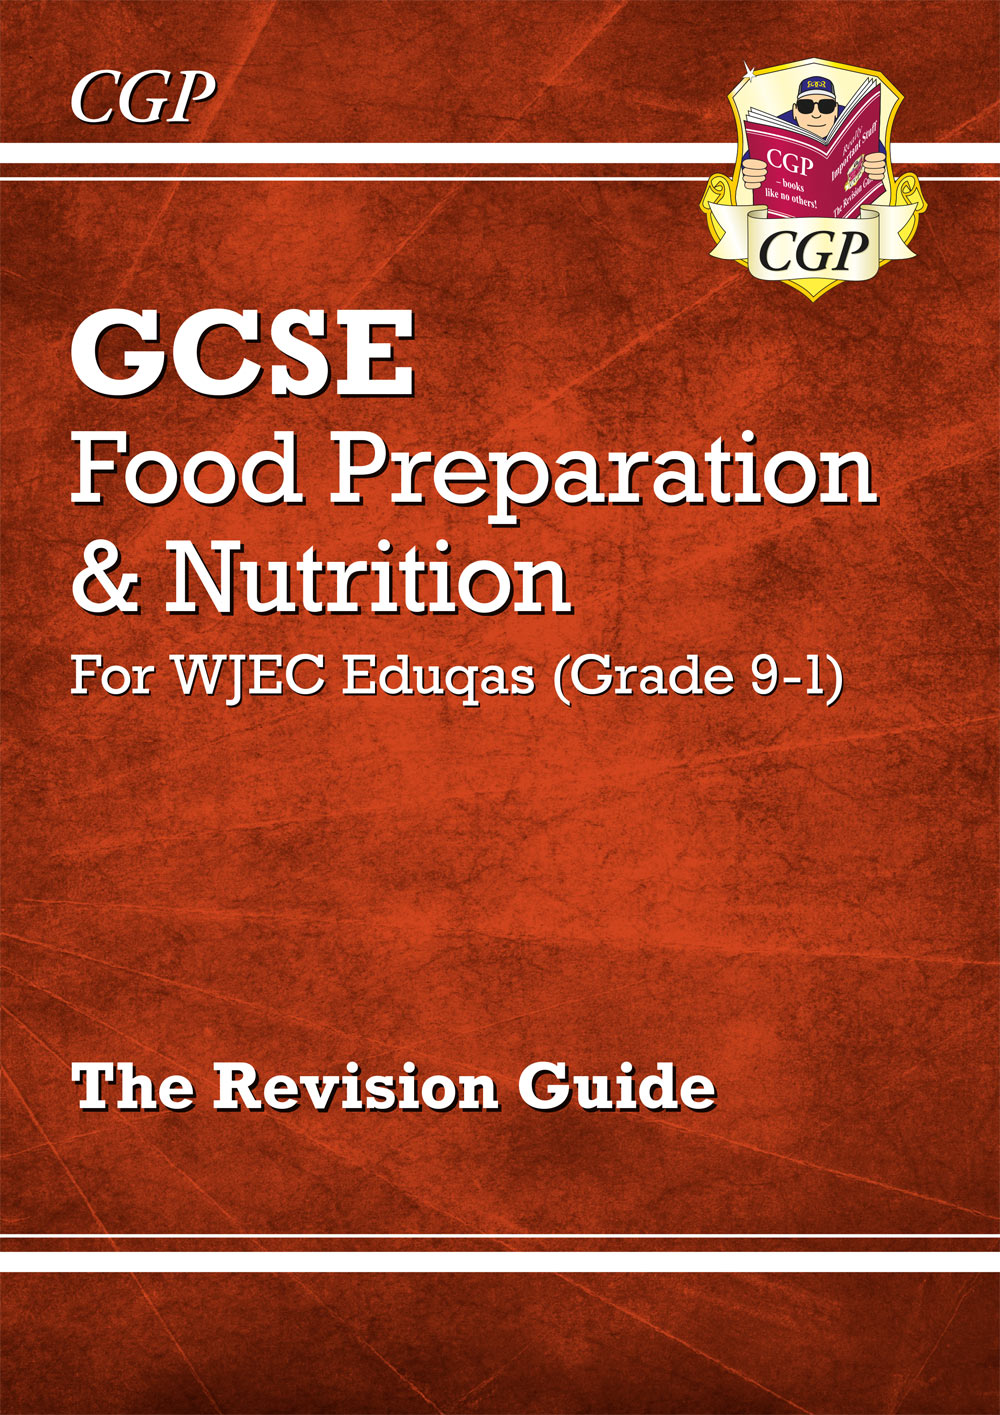 FNWR41 - New Grade 9-1 GCSE Food Preparation & Nutrition - WJEC Eduqas Revision Guide